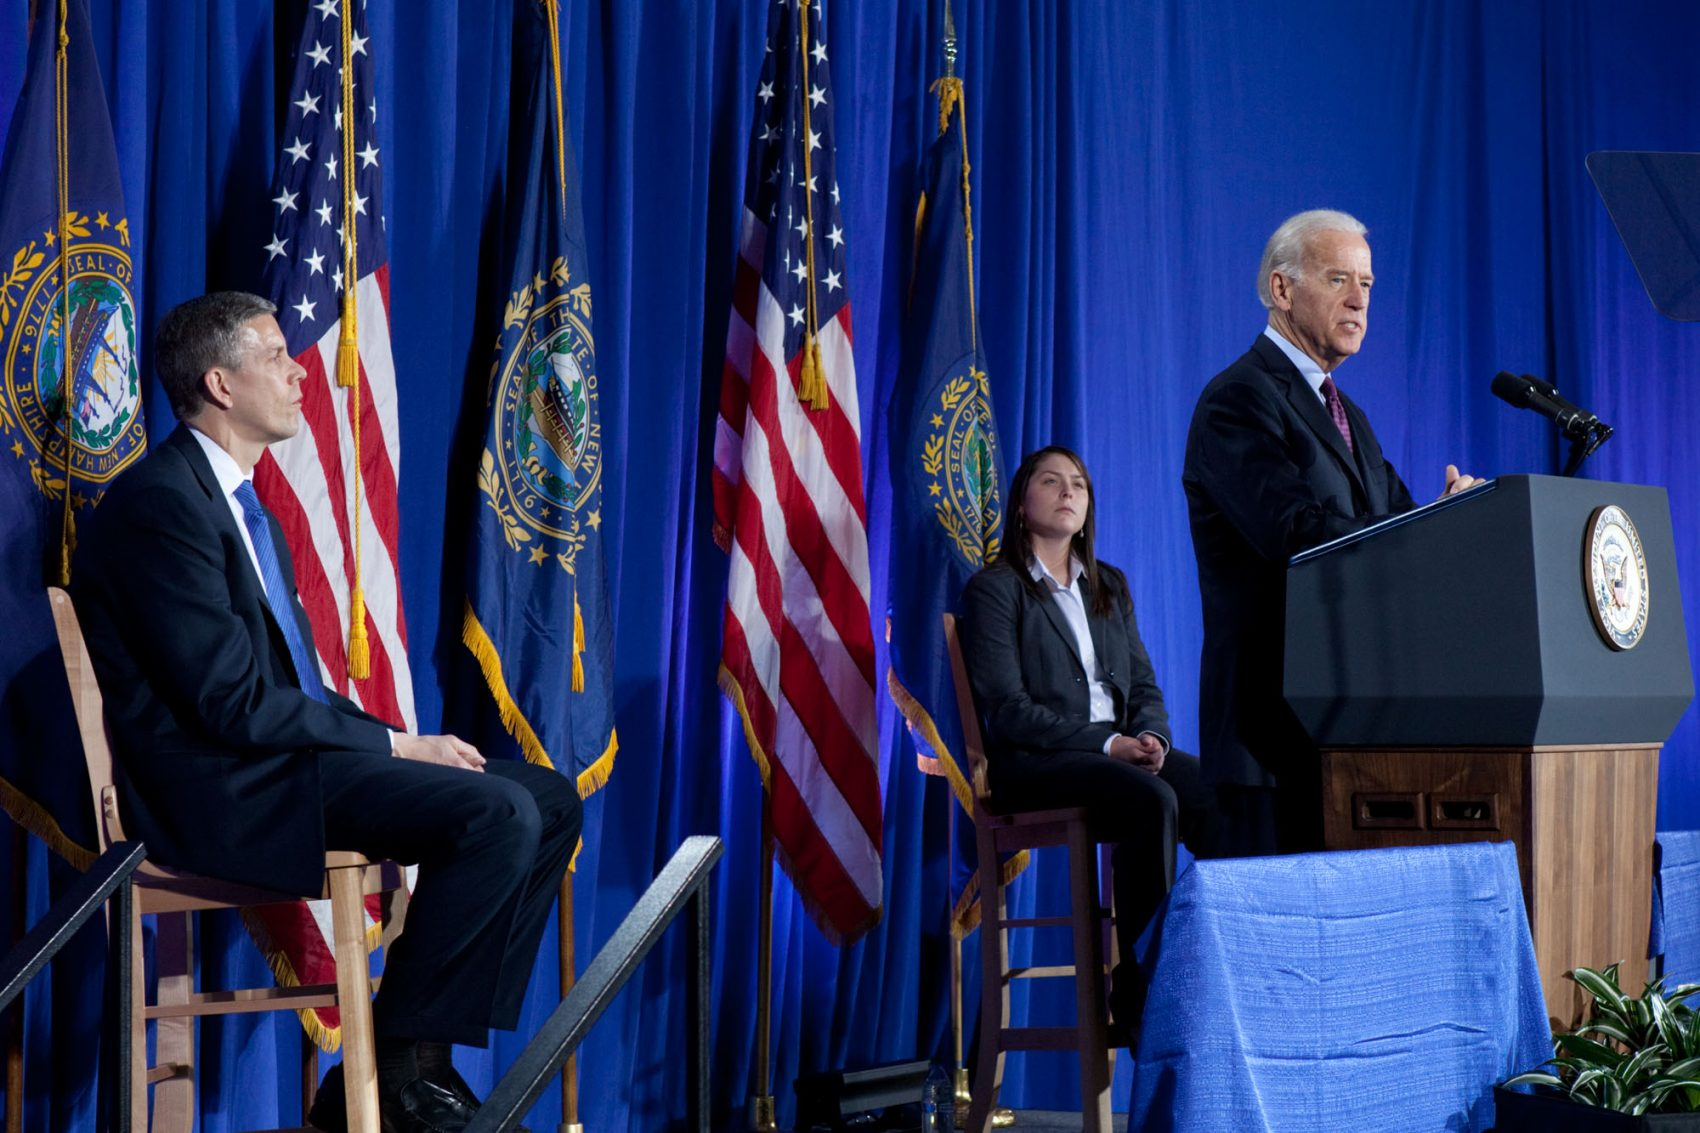 Vice President Joe Biden and Secretary of Education Arne Duncan deliver remarks at the University of New Hampshire, in Durham, NH, April 4, 2011.  (Official White House Photo by David Lienemann).